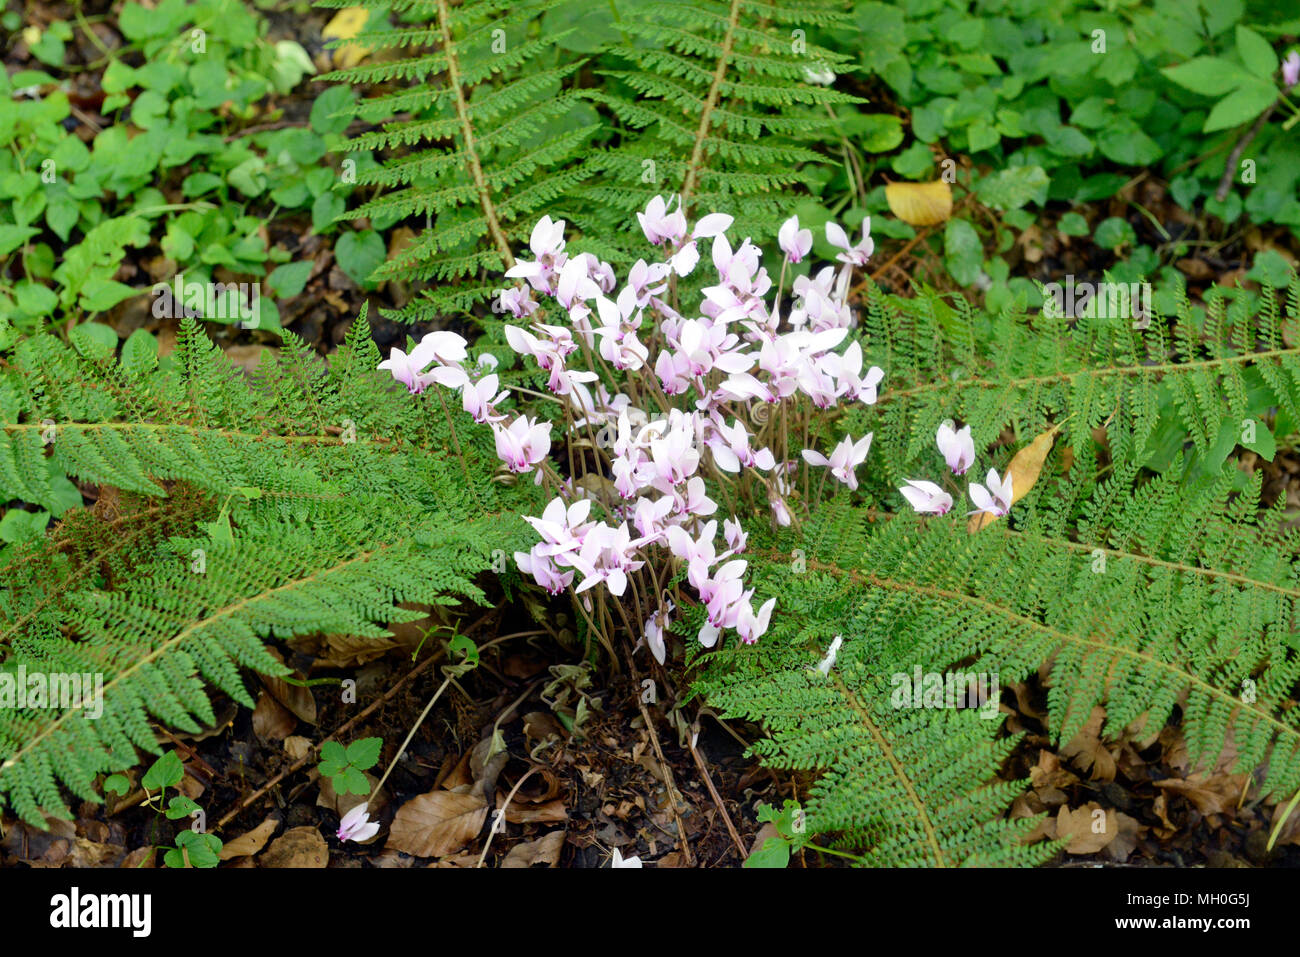 Cyclamen flowers bloom in middle of fern fronds on forest floor Stock Photo